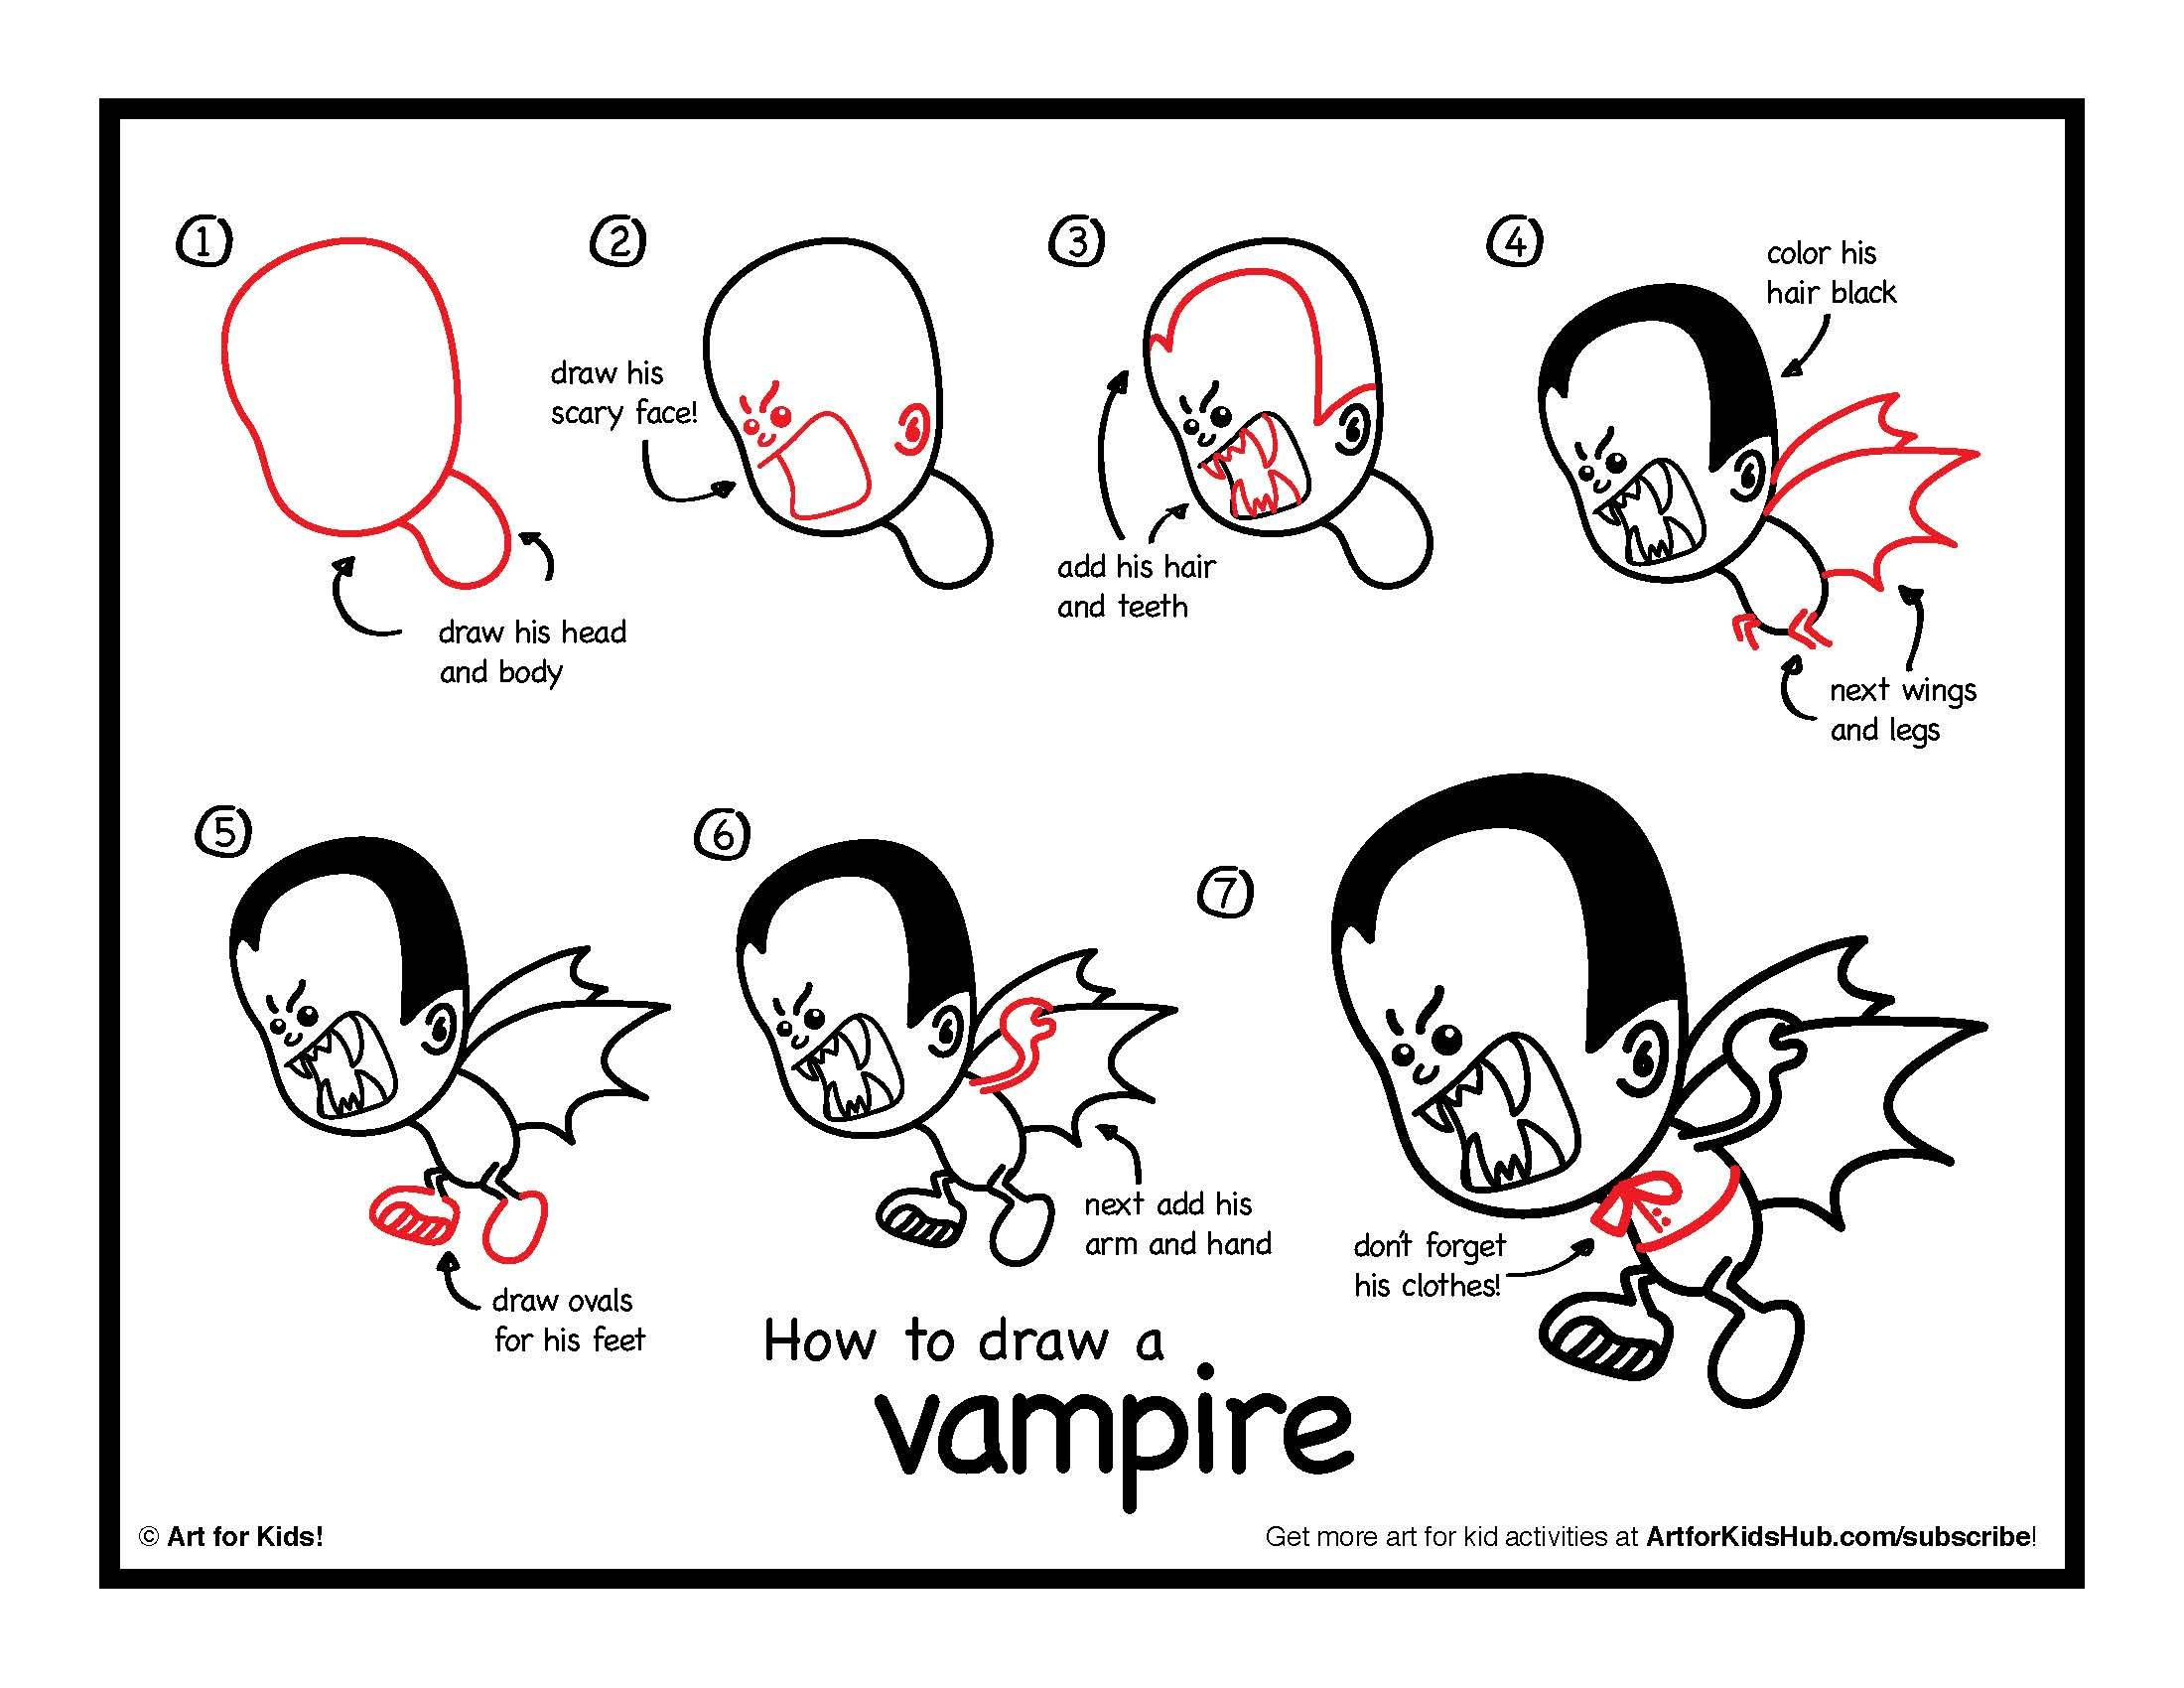 How To Draw A Vampire